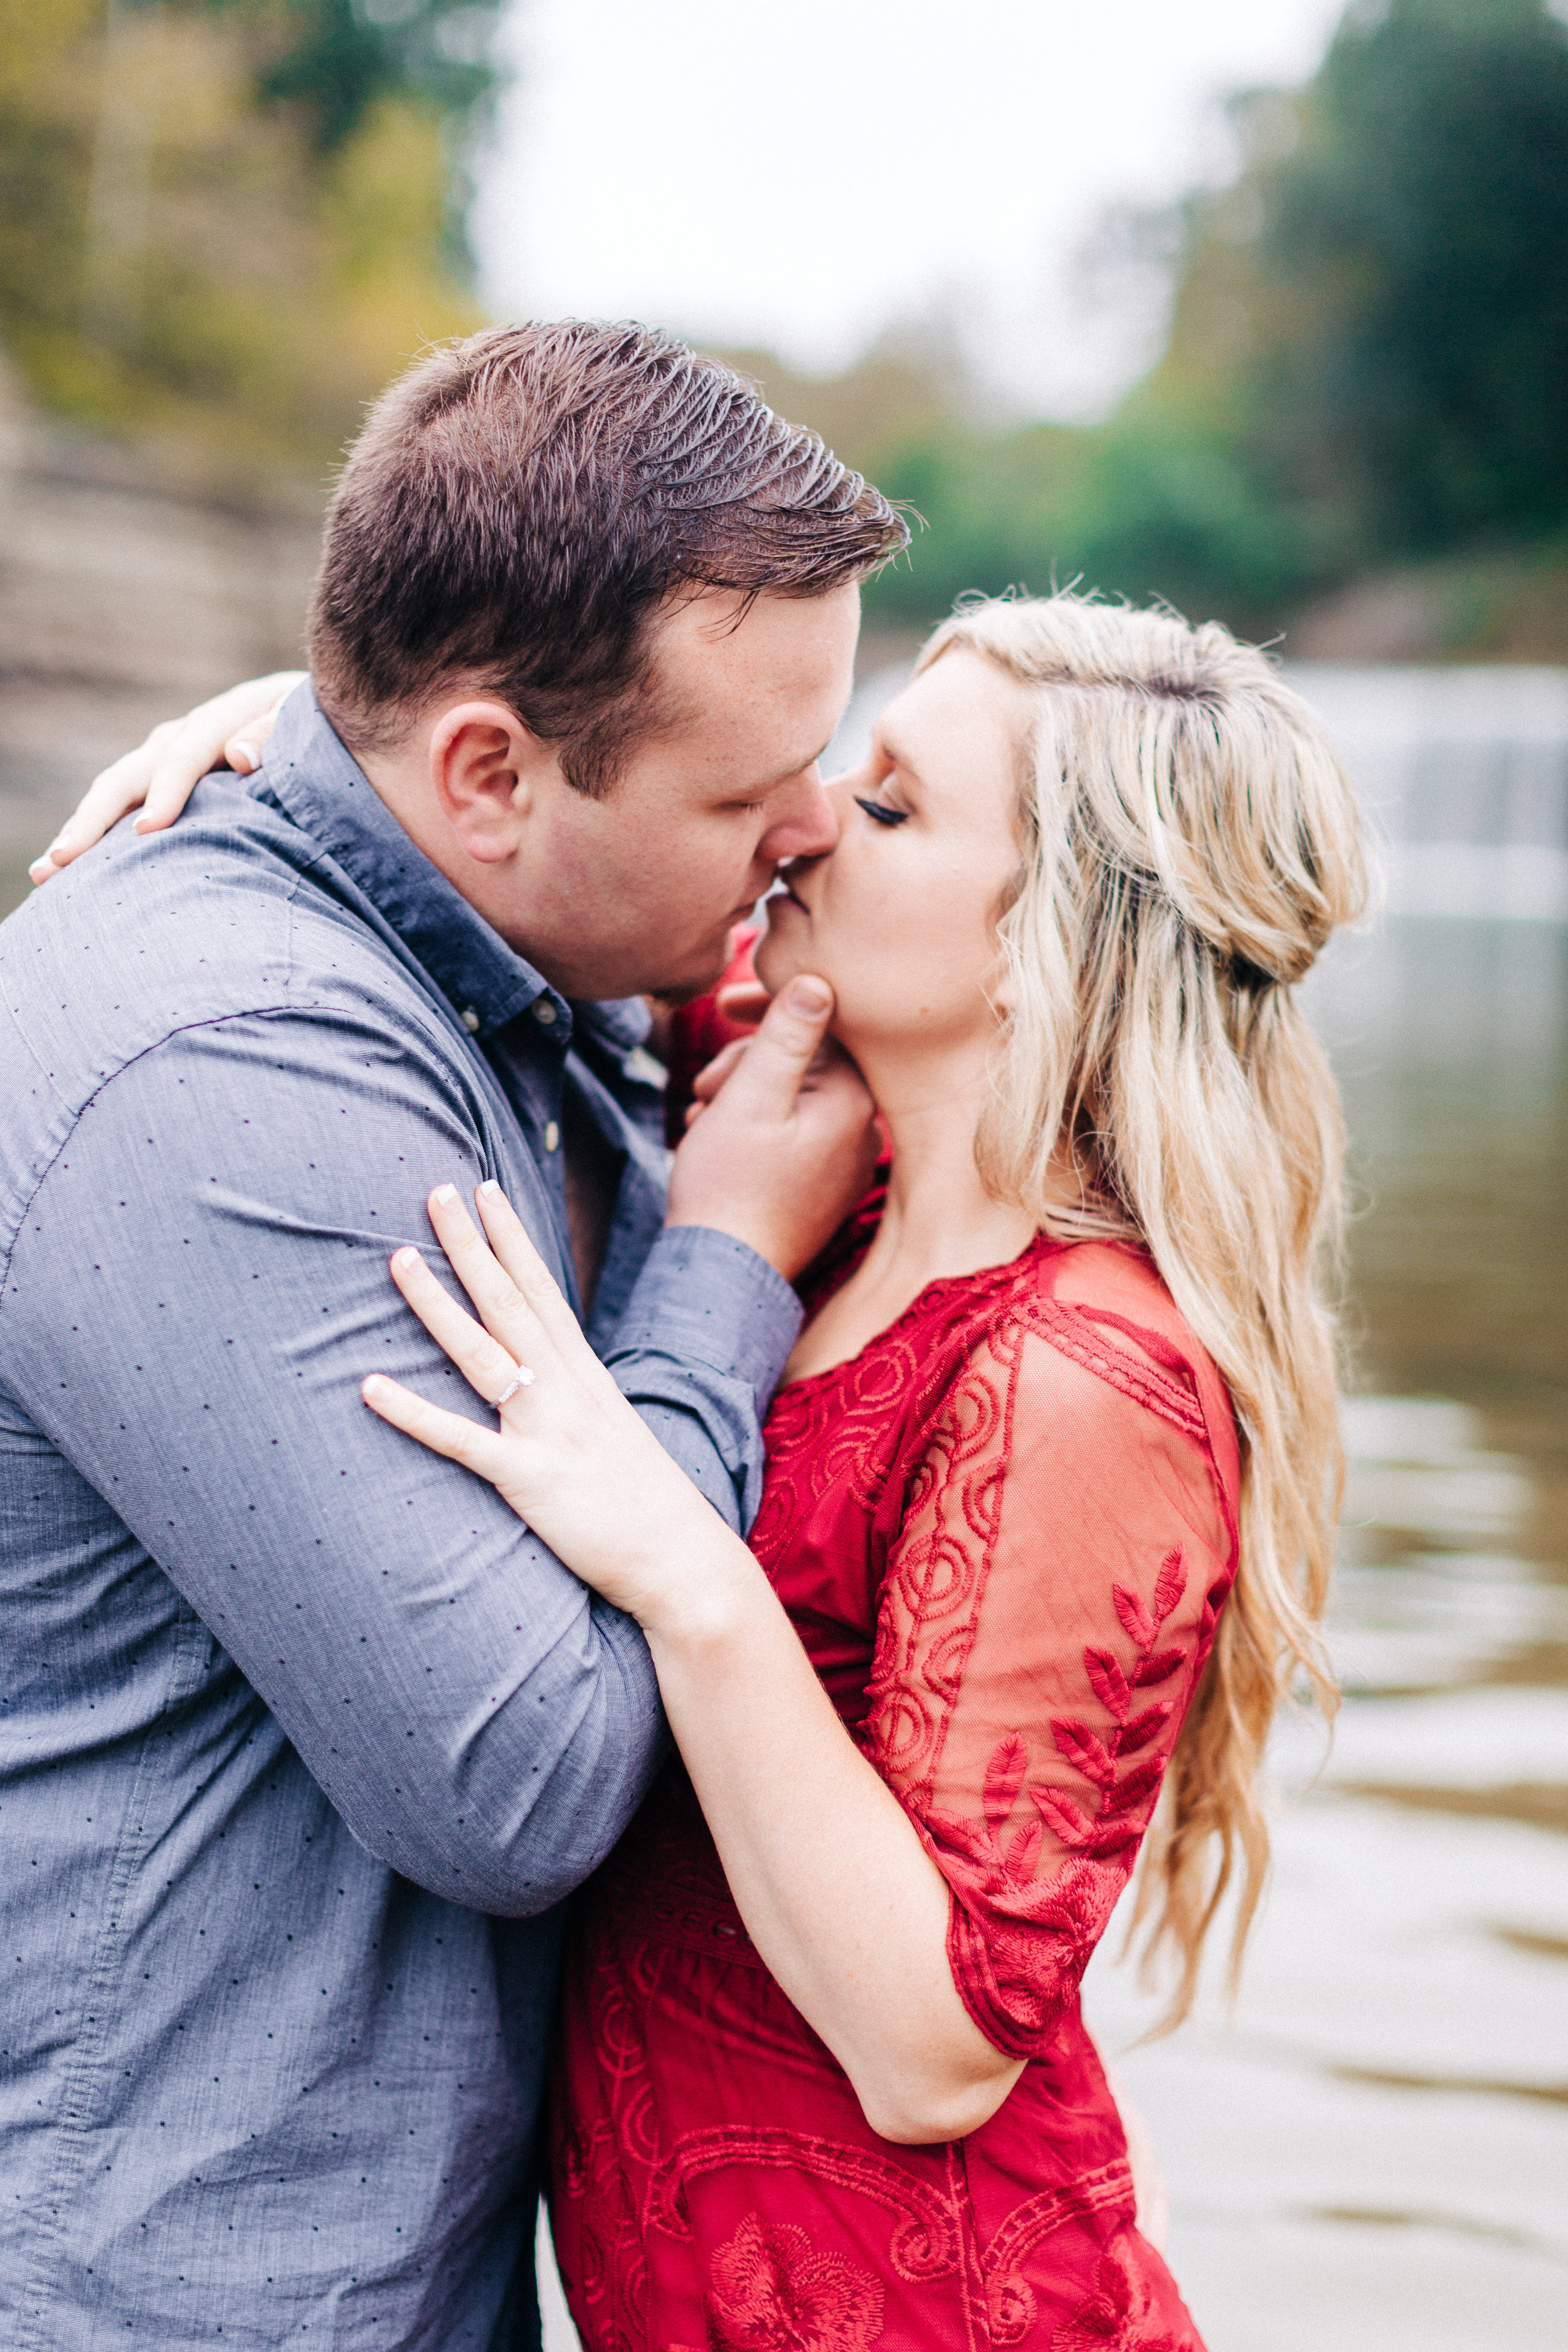 Dorothy_Louise_Photography_Alyssa_Drew_Indiana_Engagement_Cataract_Falls-176.jpg